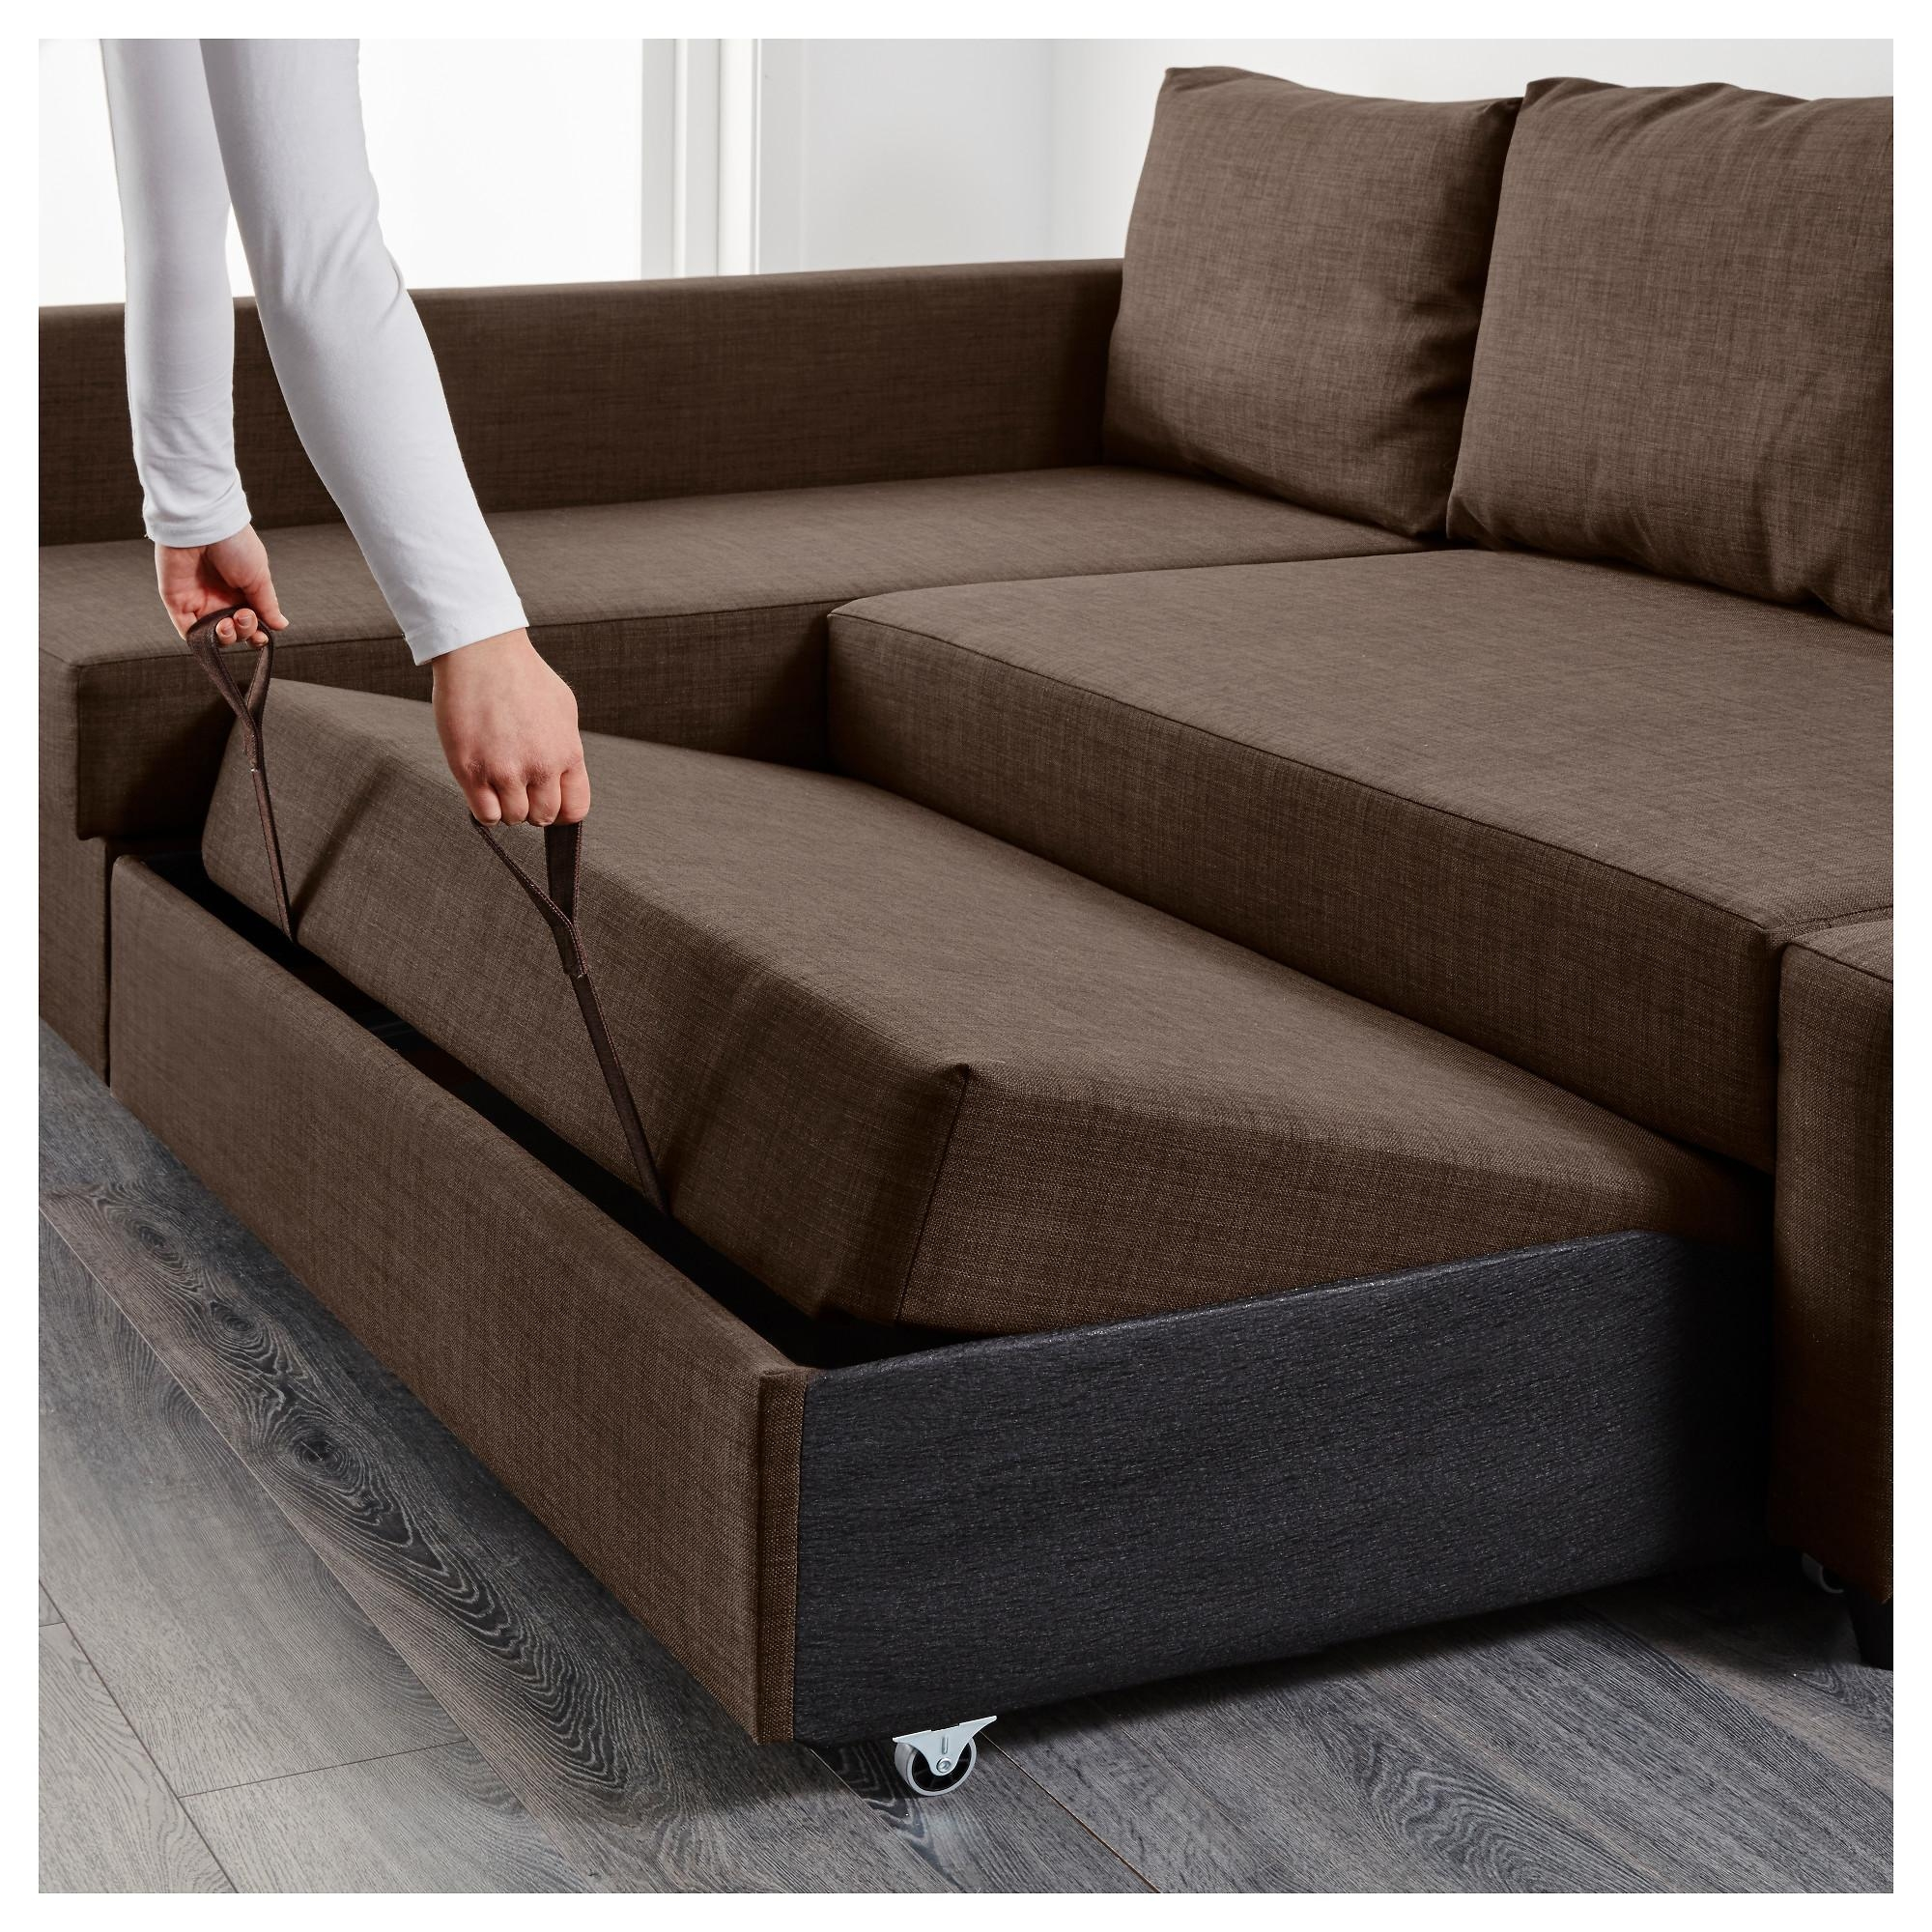 20 Best Ideas L Shaped Sofa Bed Sofa Ideas